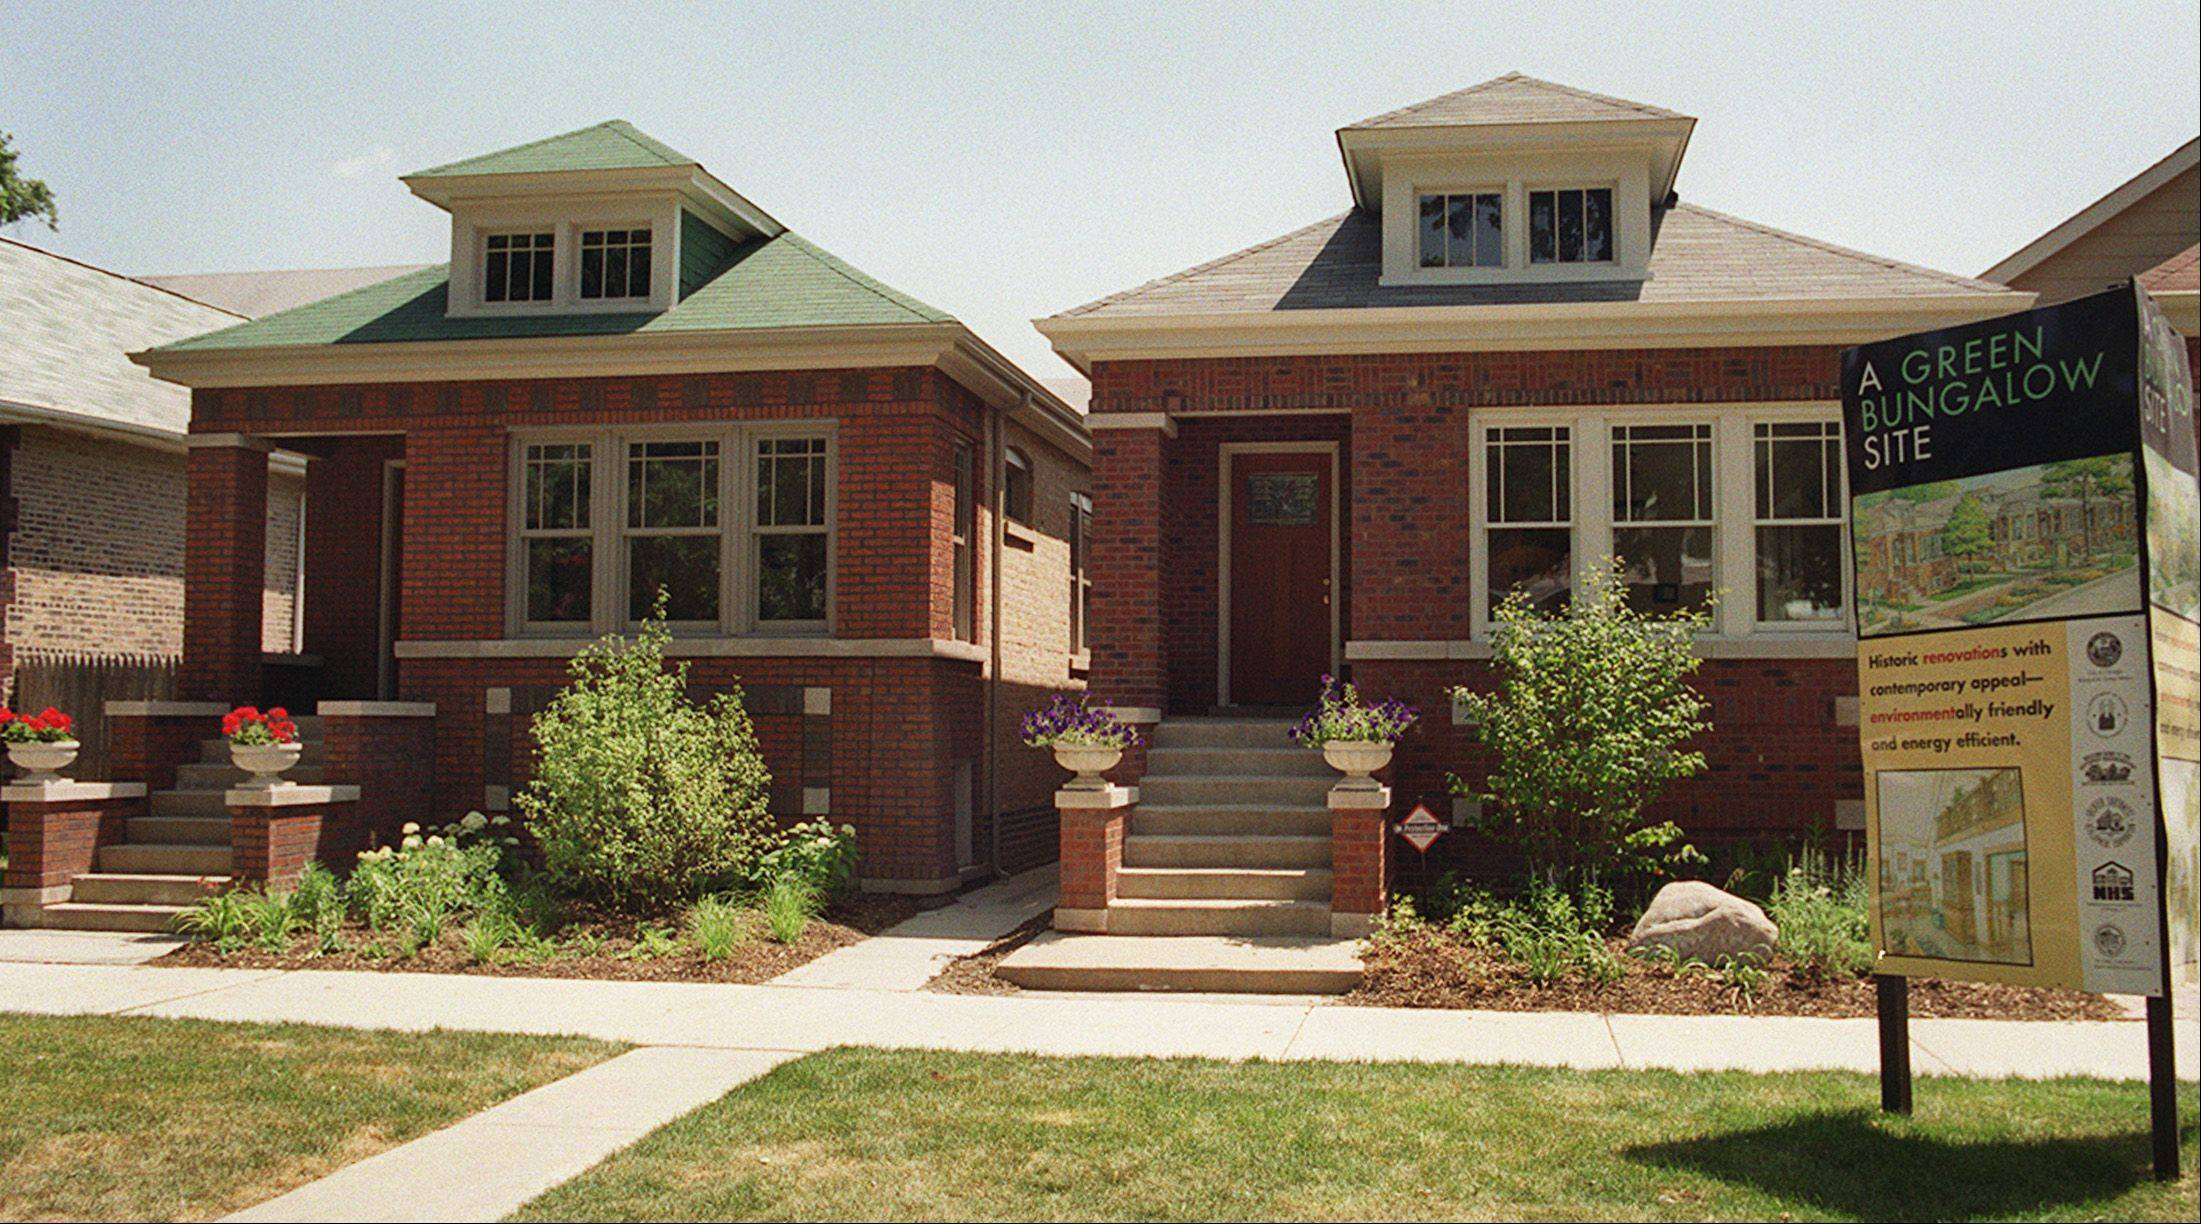 These bungalows in Chicago are a common style found throughout the city and suburbs.